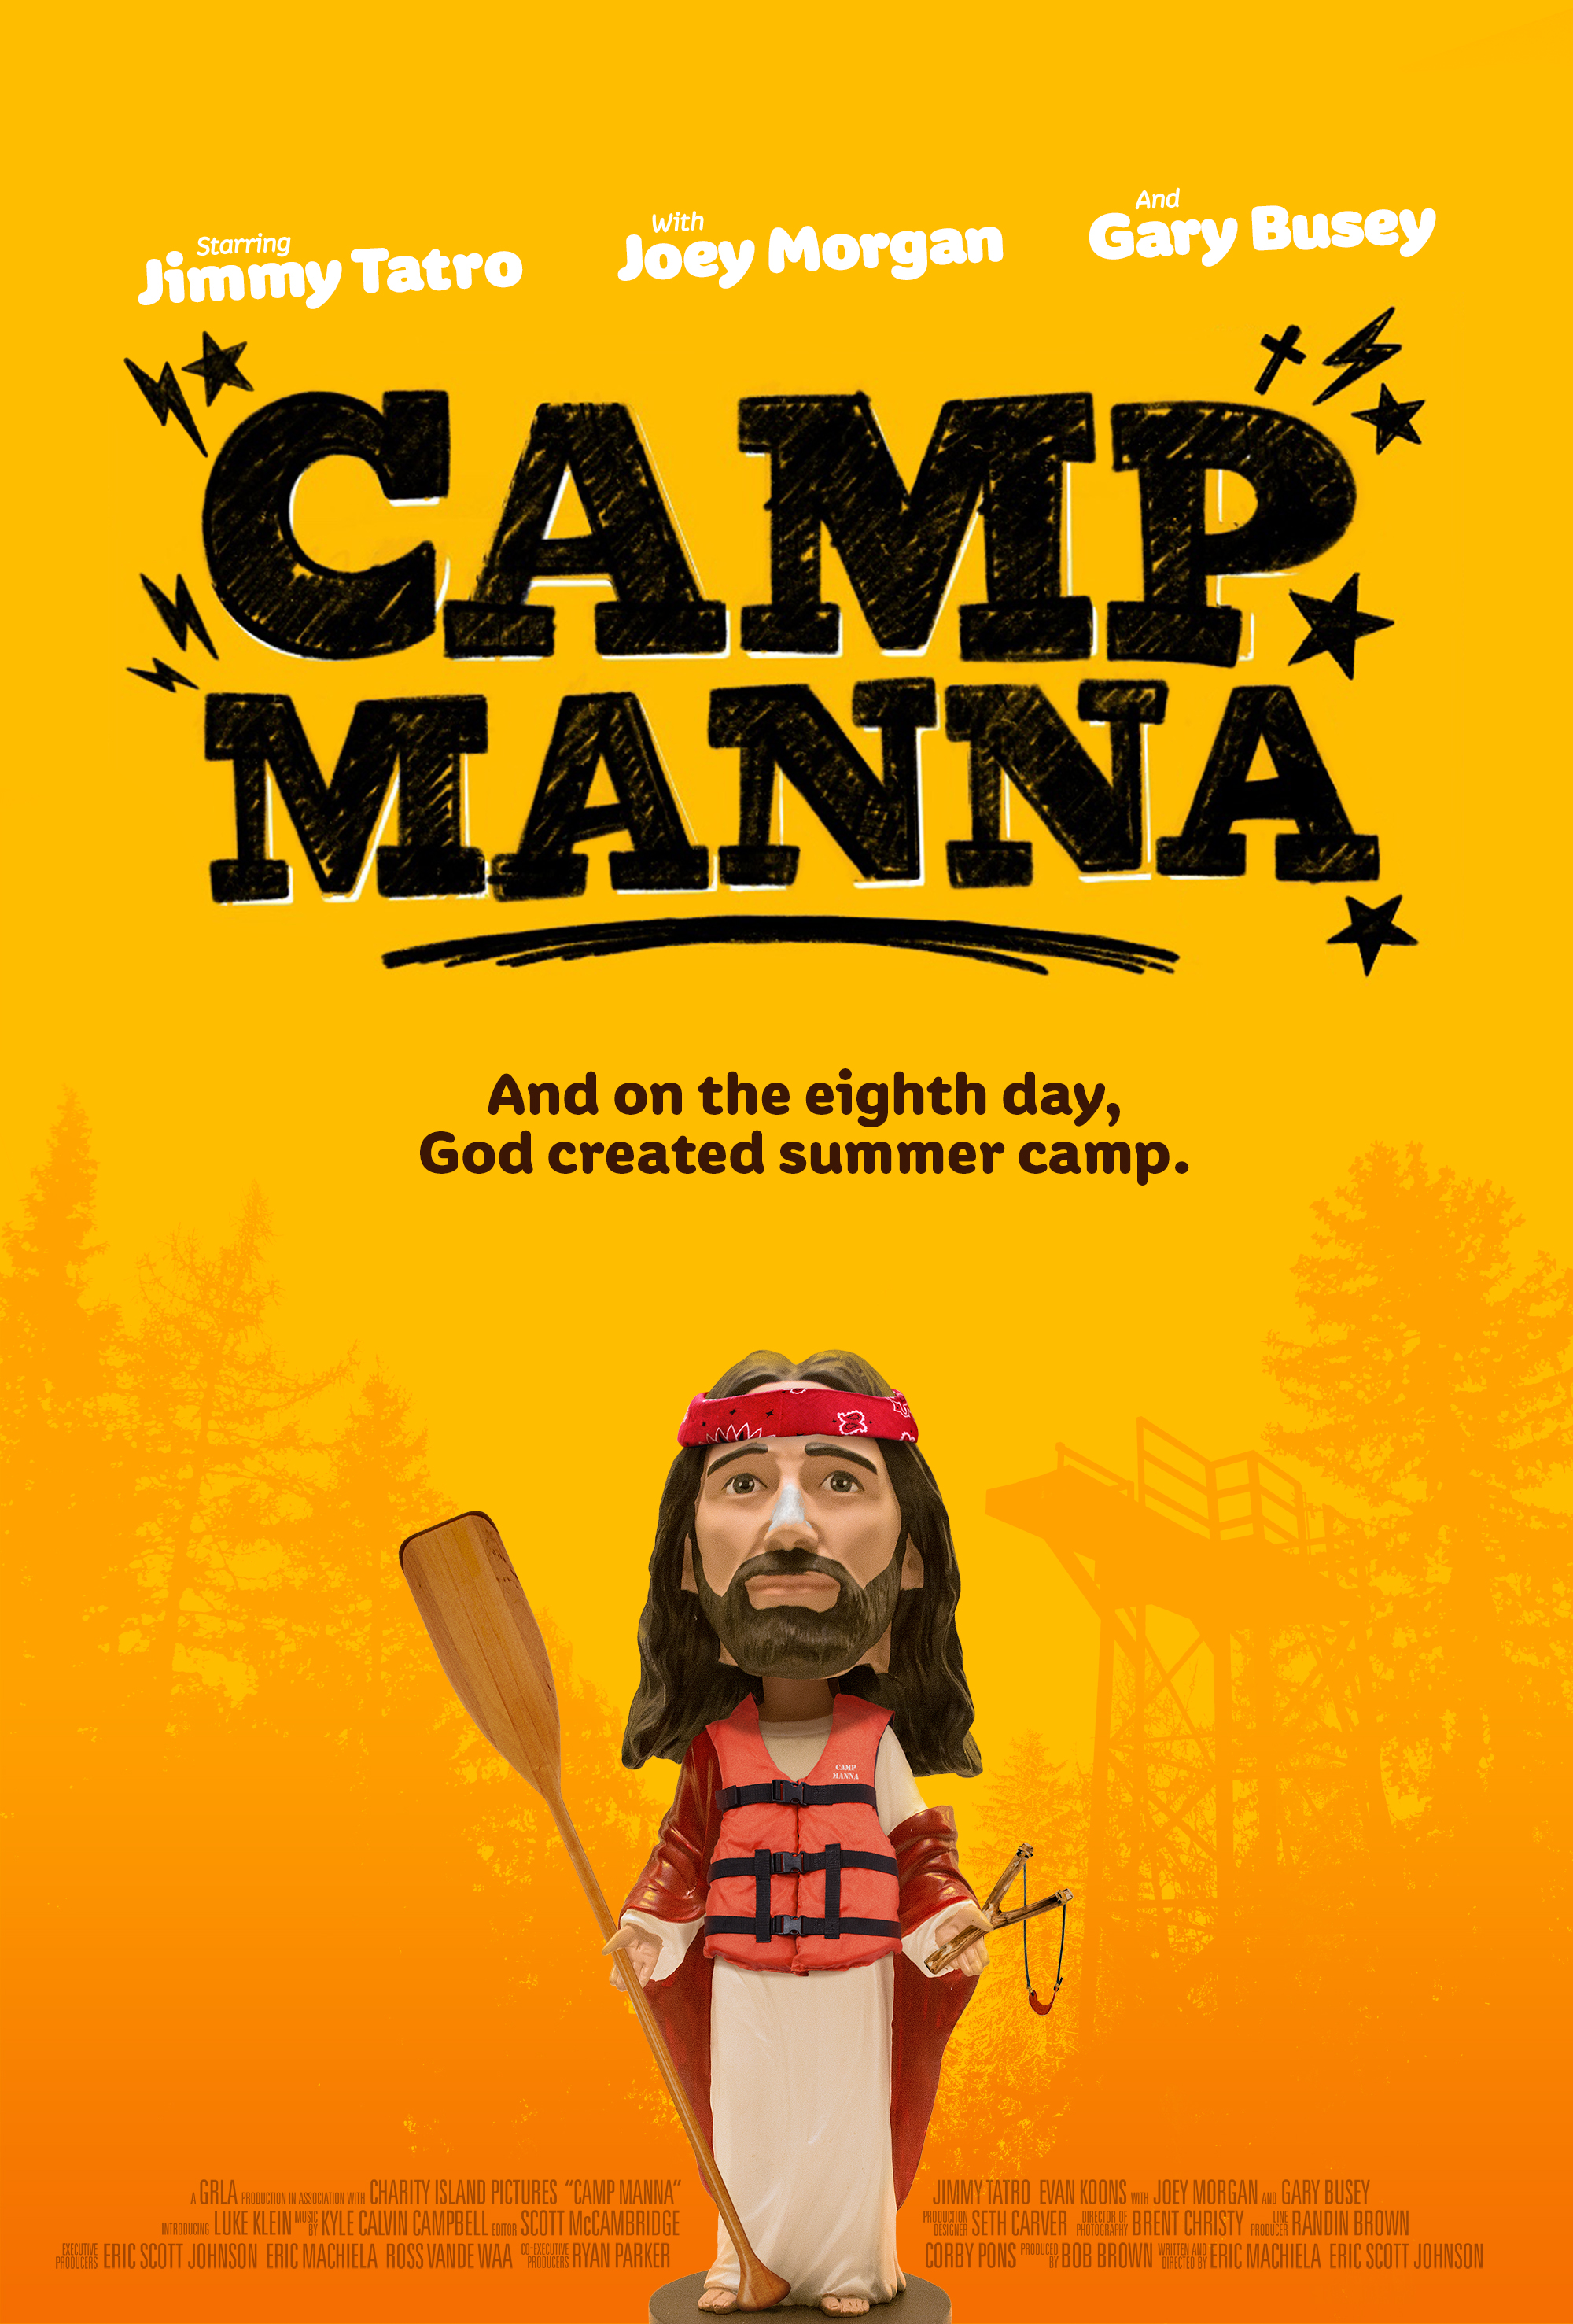 Camp Manna (2018) - Directed by: Eric Scott Johnson, Eric MachielaStarring: Luke Klein, Gary Busey, Evan Koons, Joey Morgan, Jimmy TatroRated: NR (Suggested PG for Some Language and Crude Humor)Running Time: 1 h 31 mTMM Score: 4 stars out of 5STRENGTHS: Writing, Acting, UnconventionalityWEAKNESSES: Might Not Be Appropriate for Younger Children